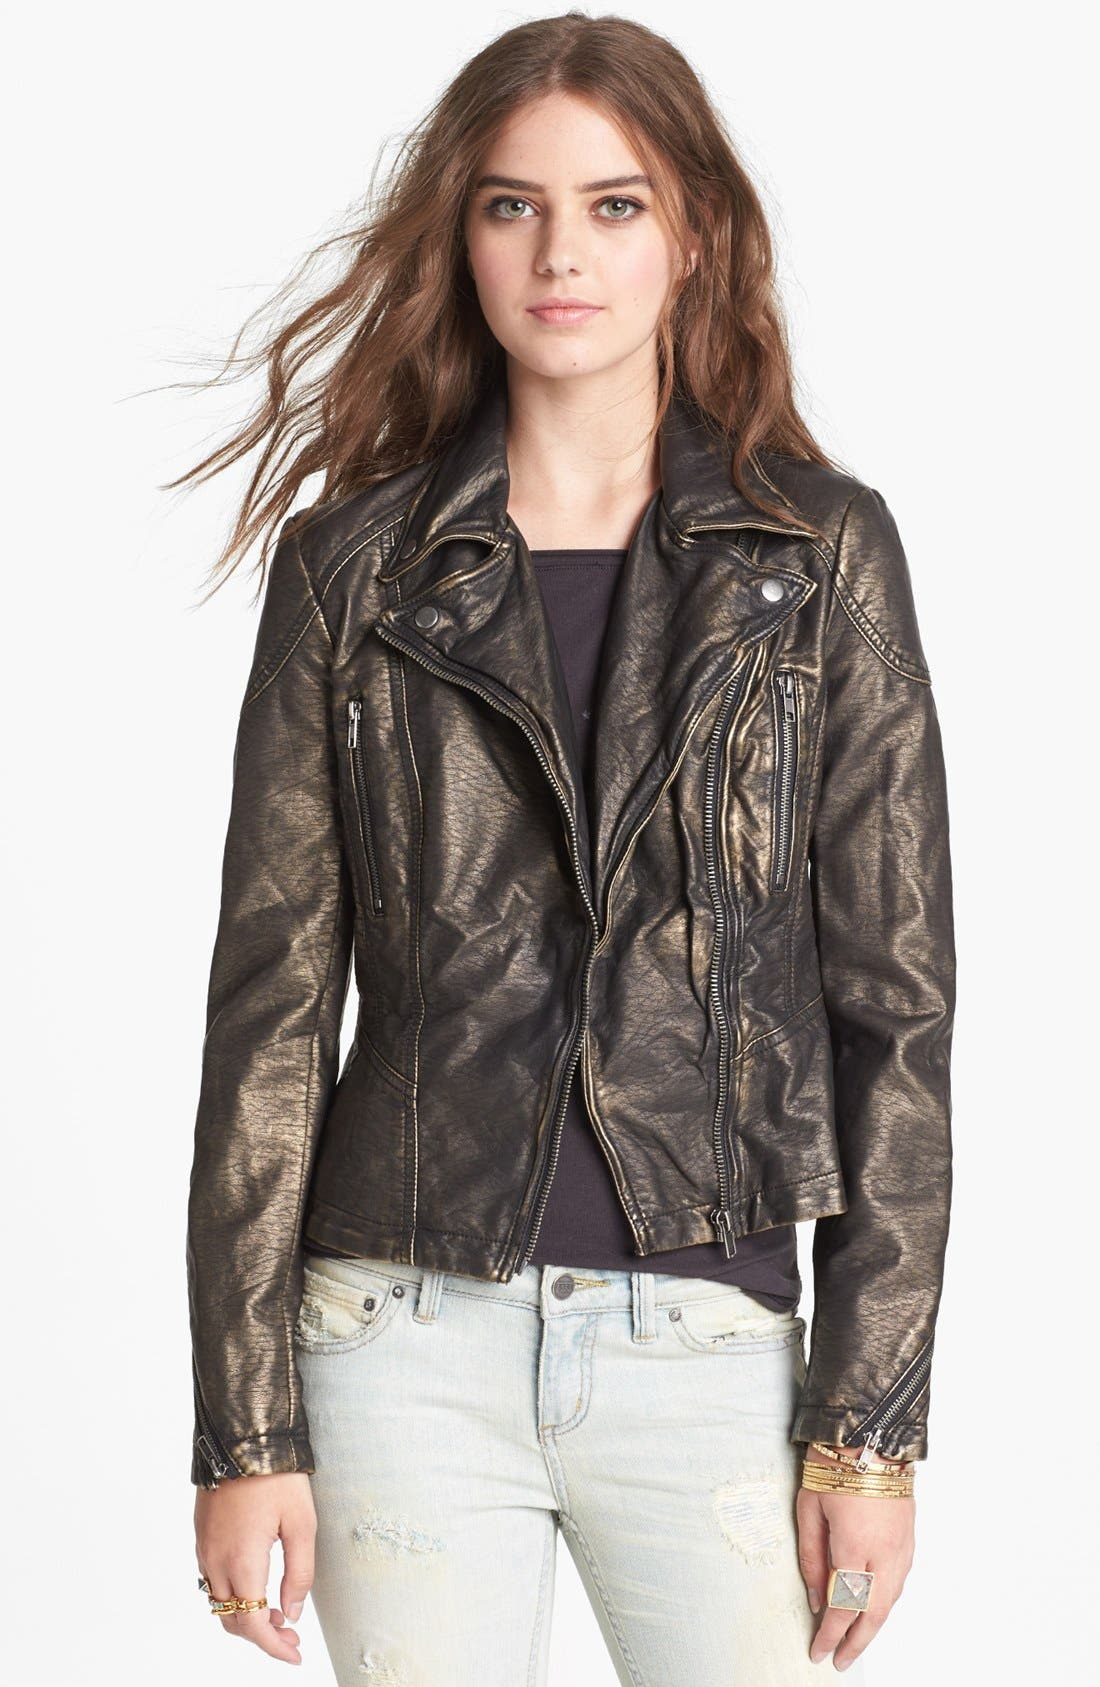 Alternate Image 1 Selected - Free People Metallic Faux Leather Jacket